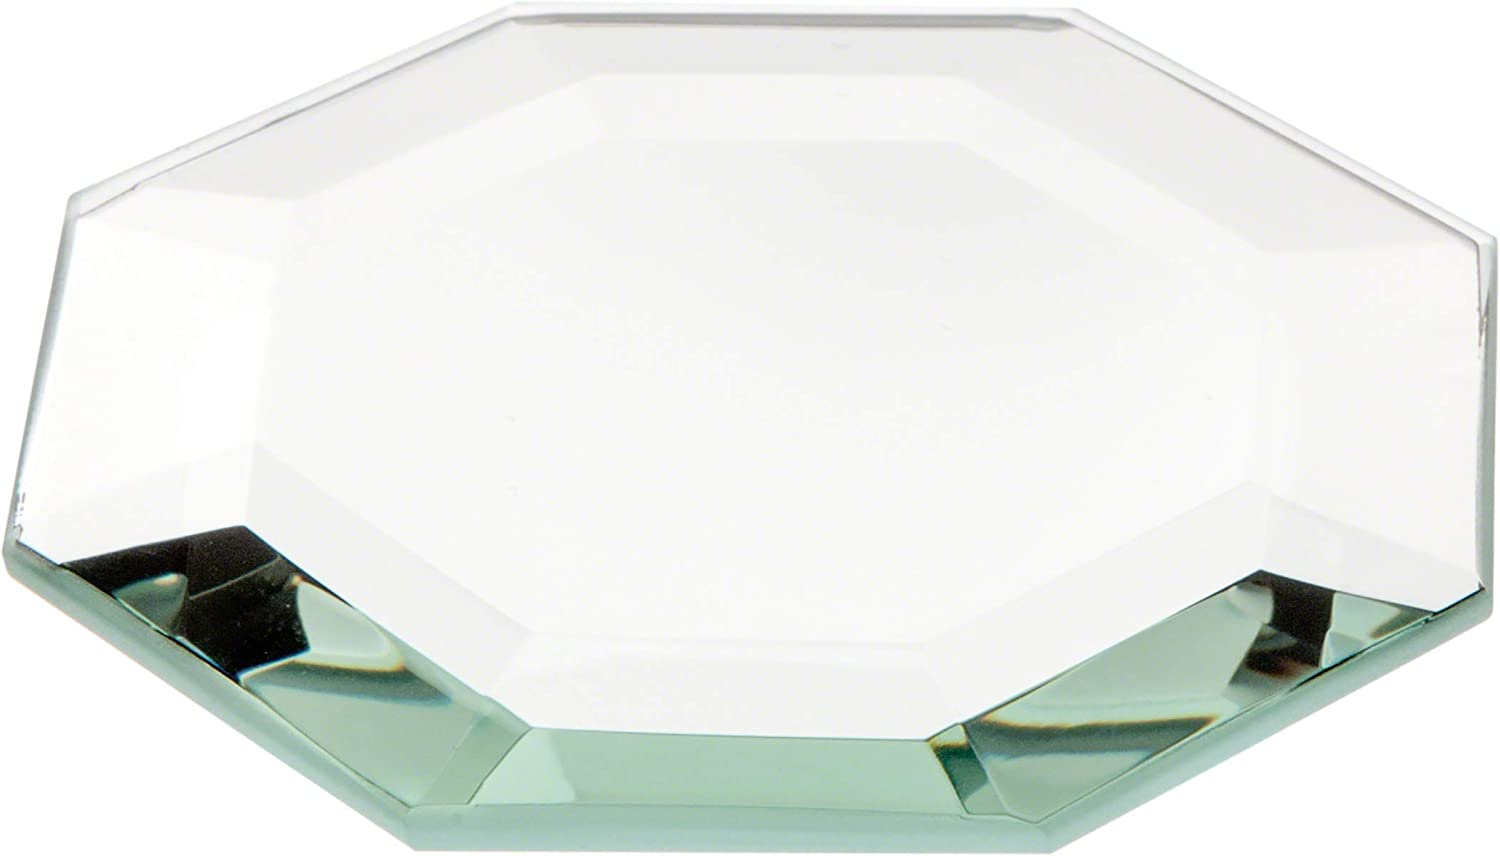 Plymor Octagon 5mm Beveled Glass Mirror, 3 inch x 3 inch